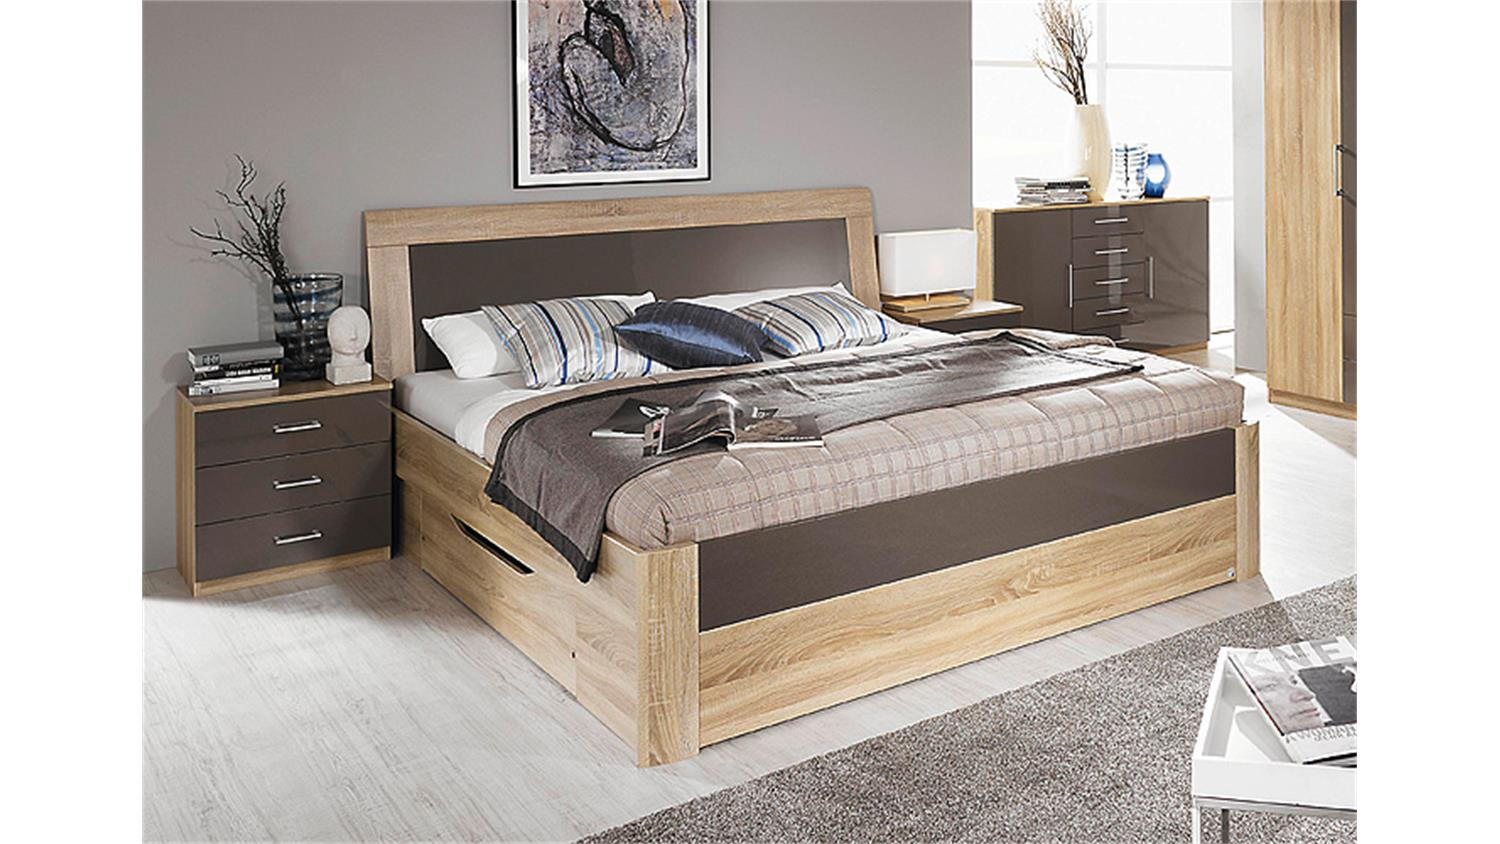 betten mit bettkasten 180x200 bett wei 180x200 landhaus. Black Bedroom Furniture Sets. Home Design Ideas